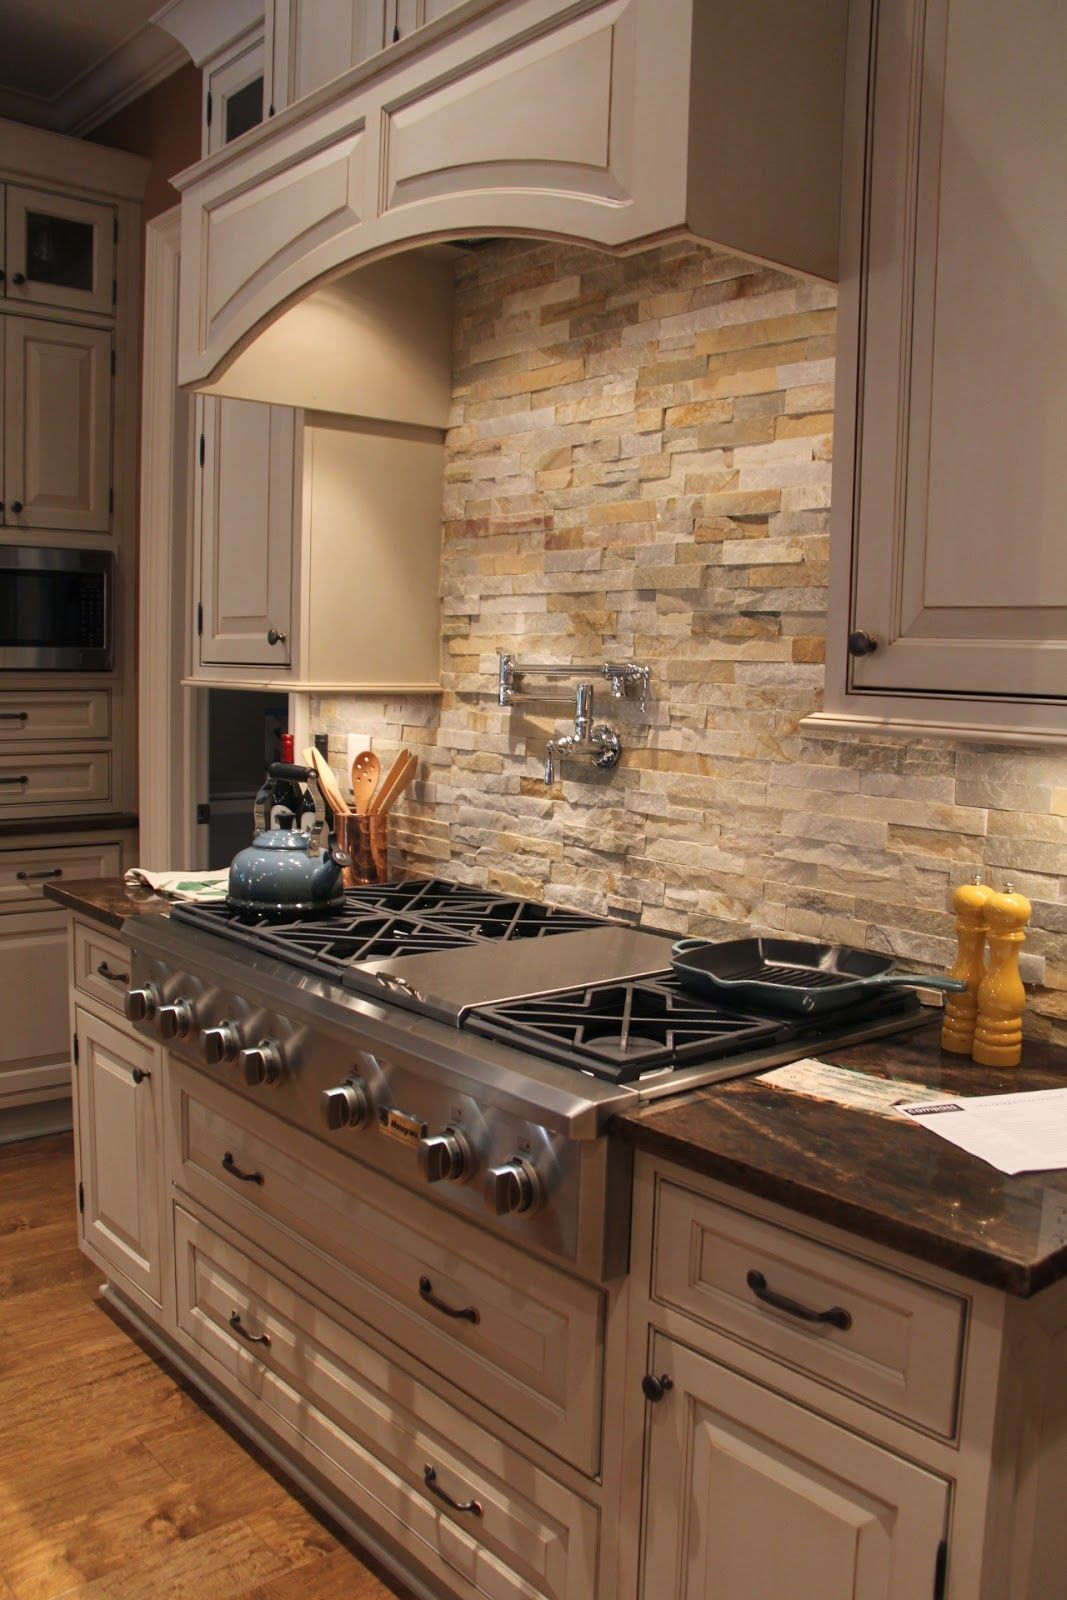 stone kitchen backsplash rustic cabinet thrift and shout my 2014 parade of homes review columbus ohio simple airstone rock stacked